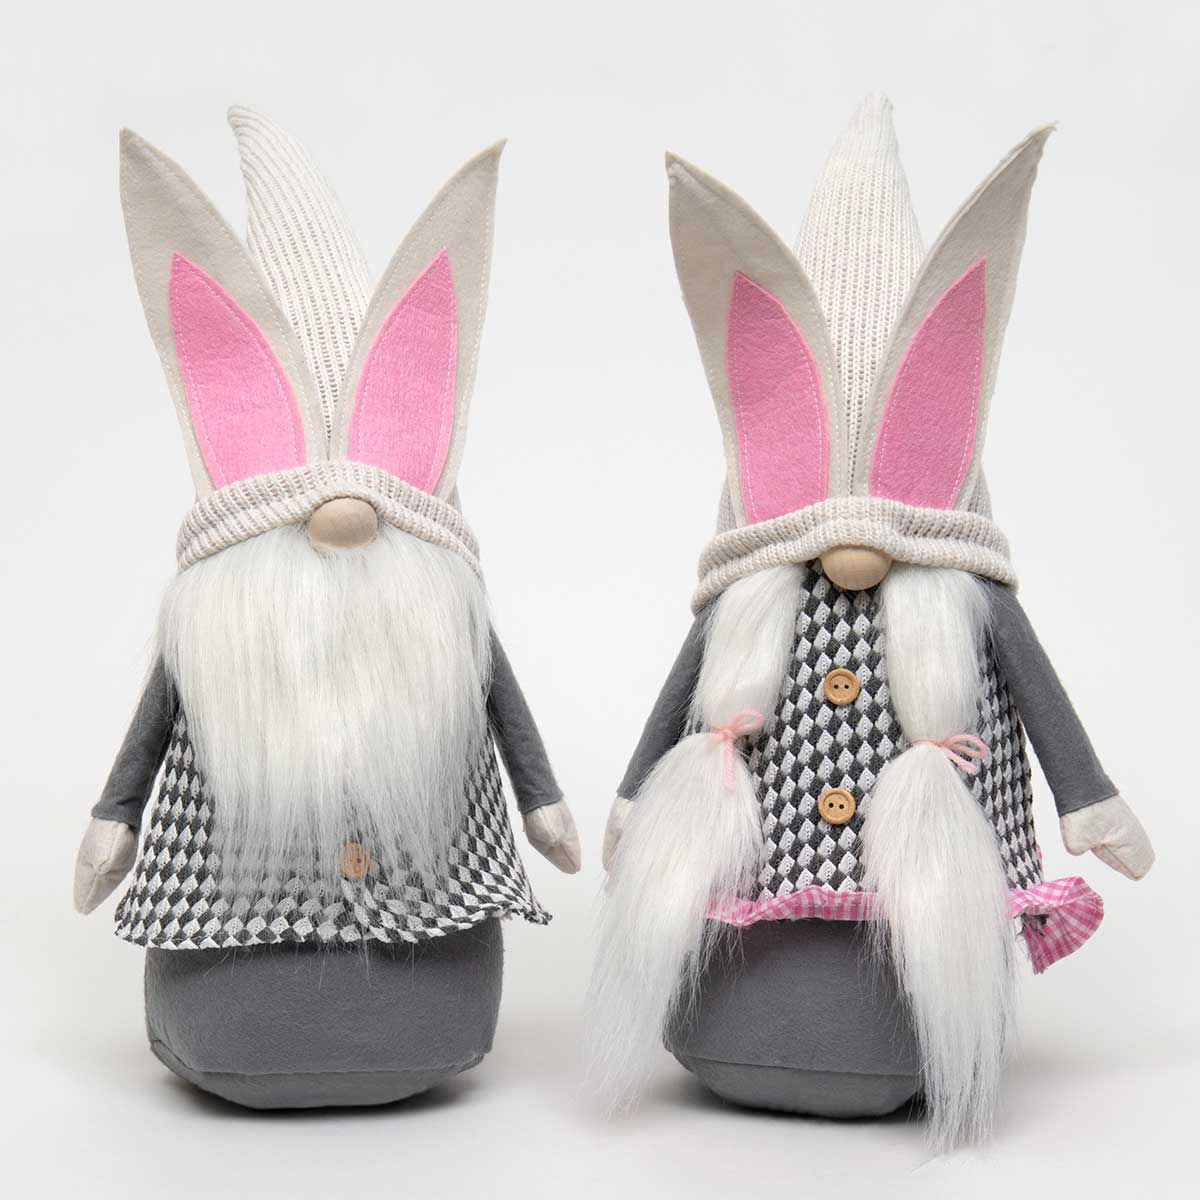 BUNNY GNOME SITABOUT 2 Assorted BOY/GIRL